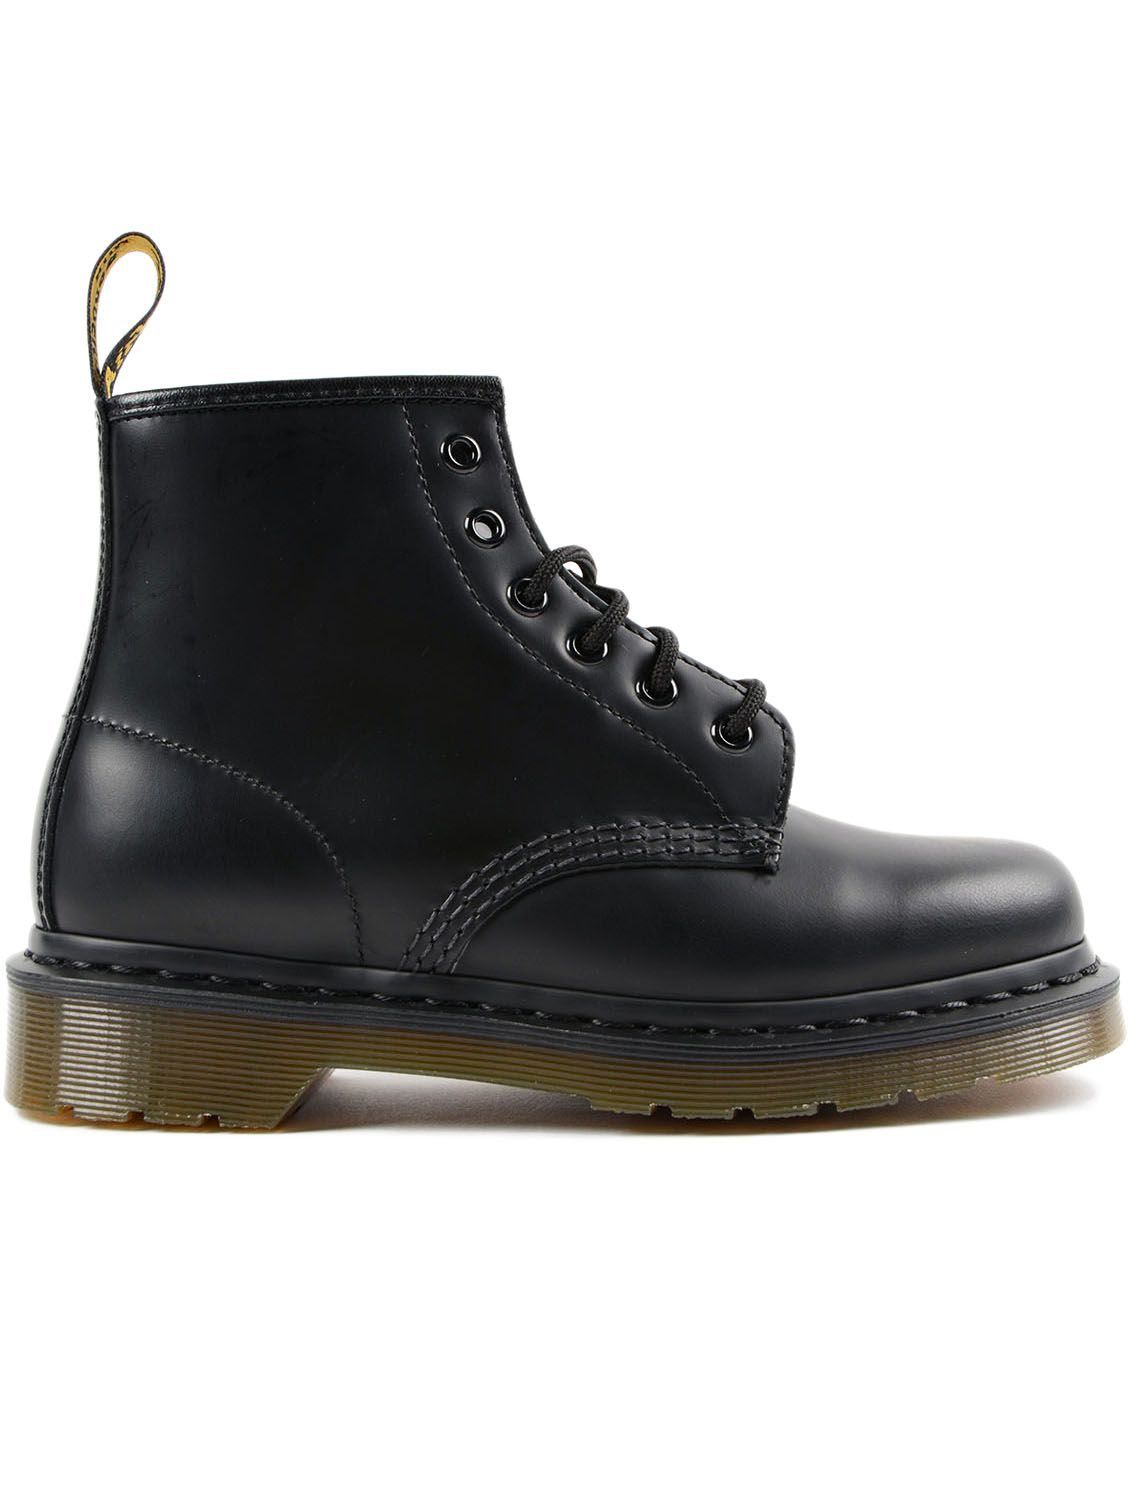 Dr. Martens 101 Smooth Lace-up Boots